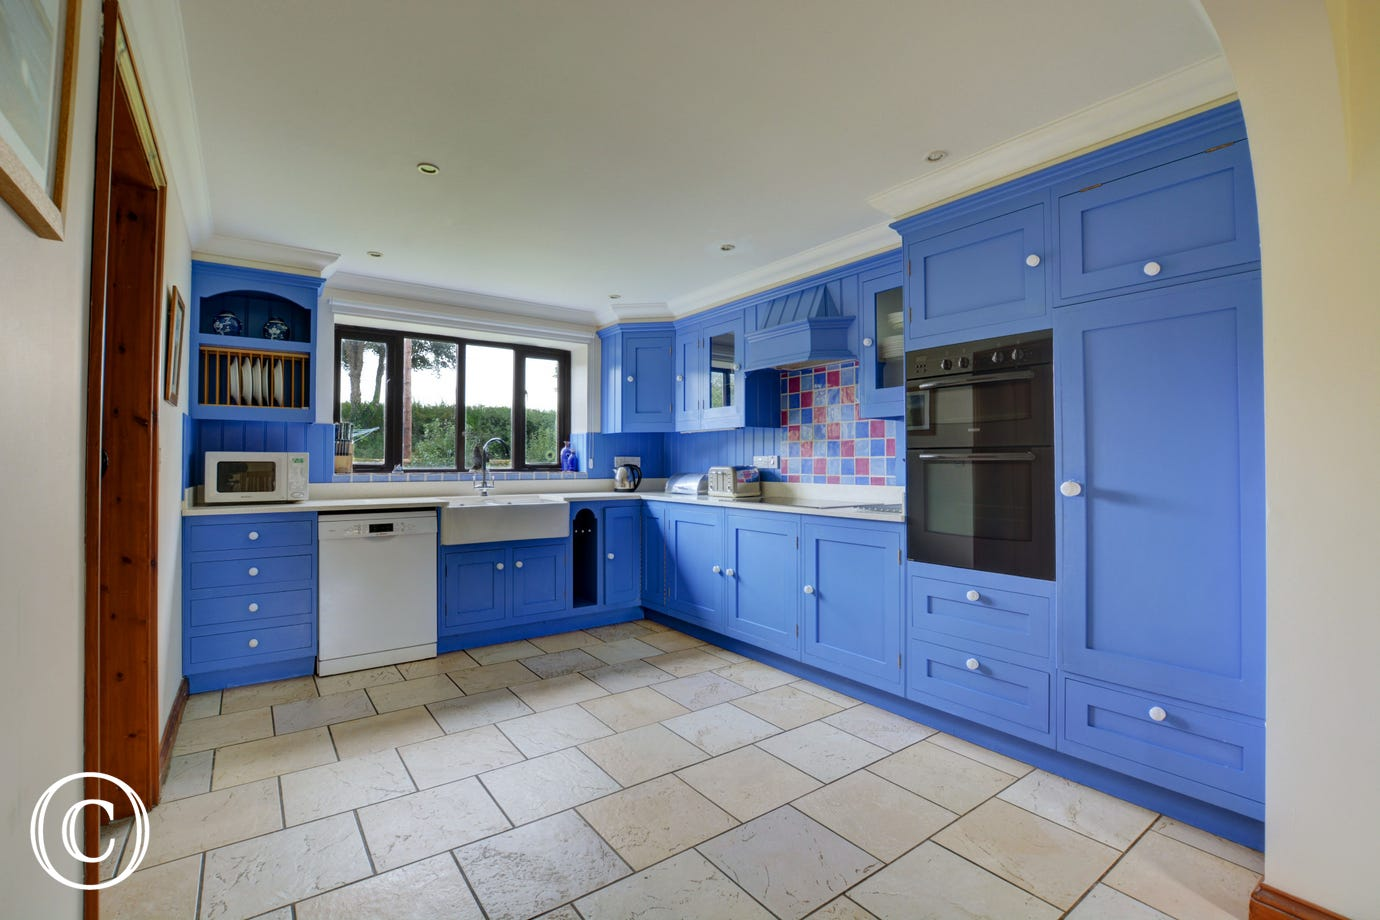 Large modern well equipped kitchen overlooking the rear garden